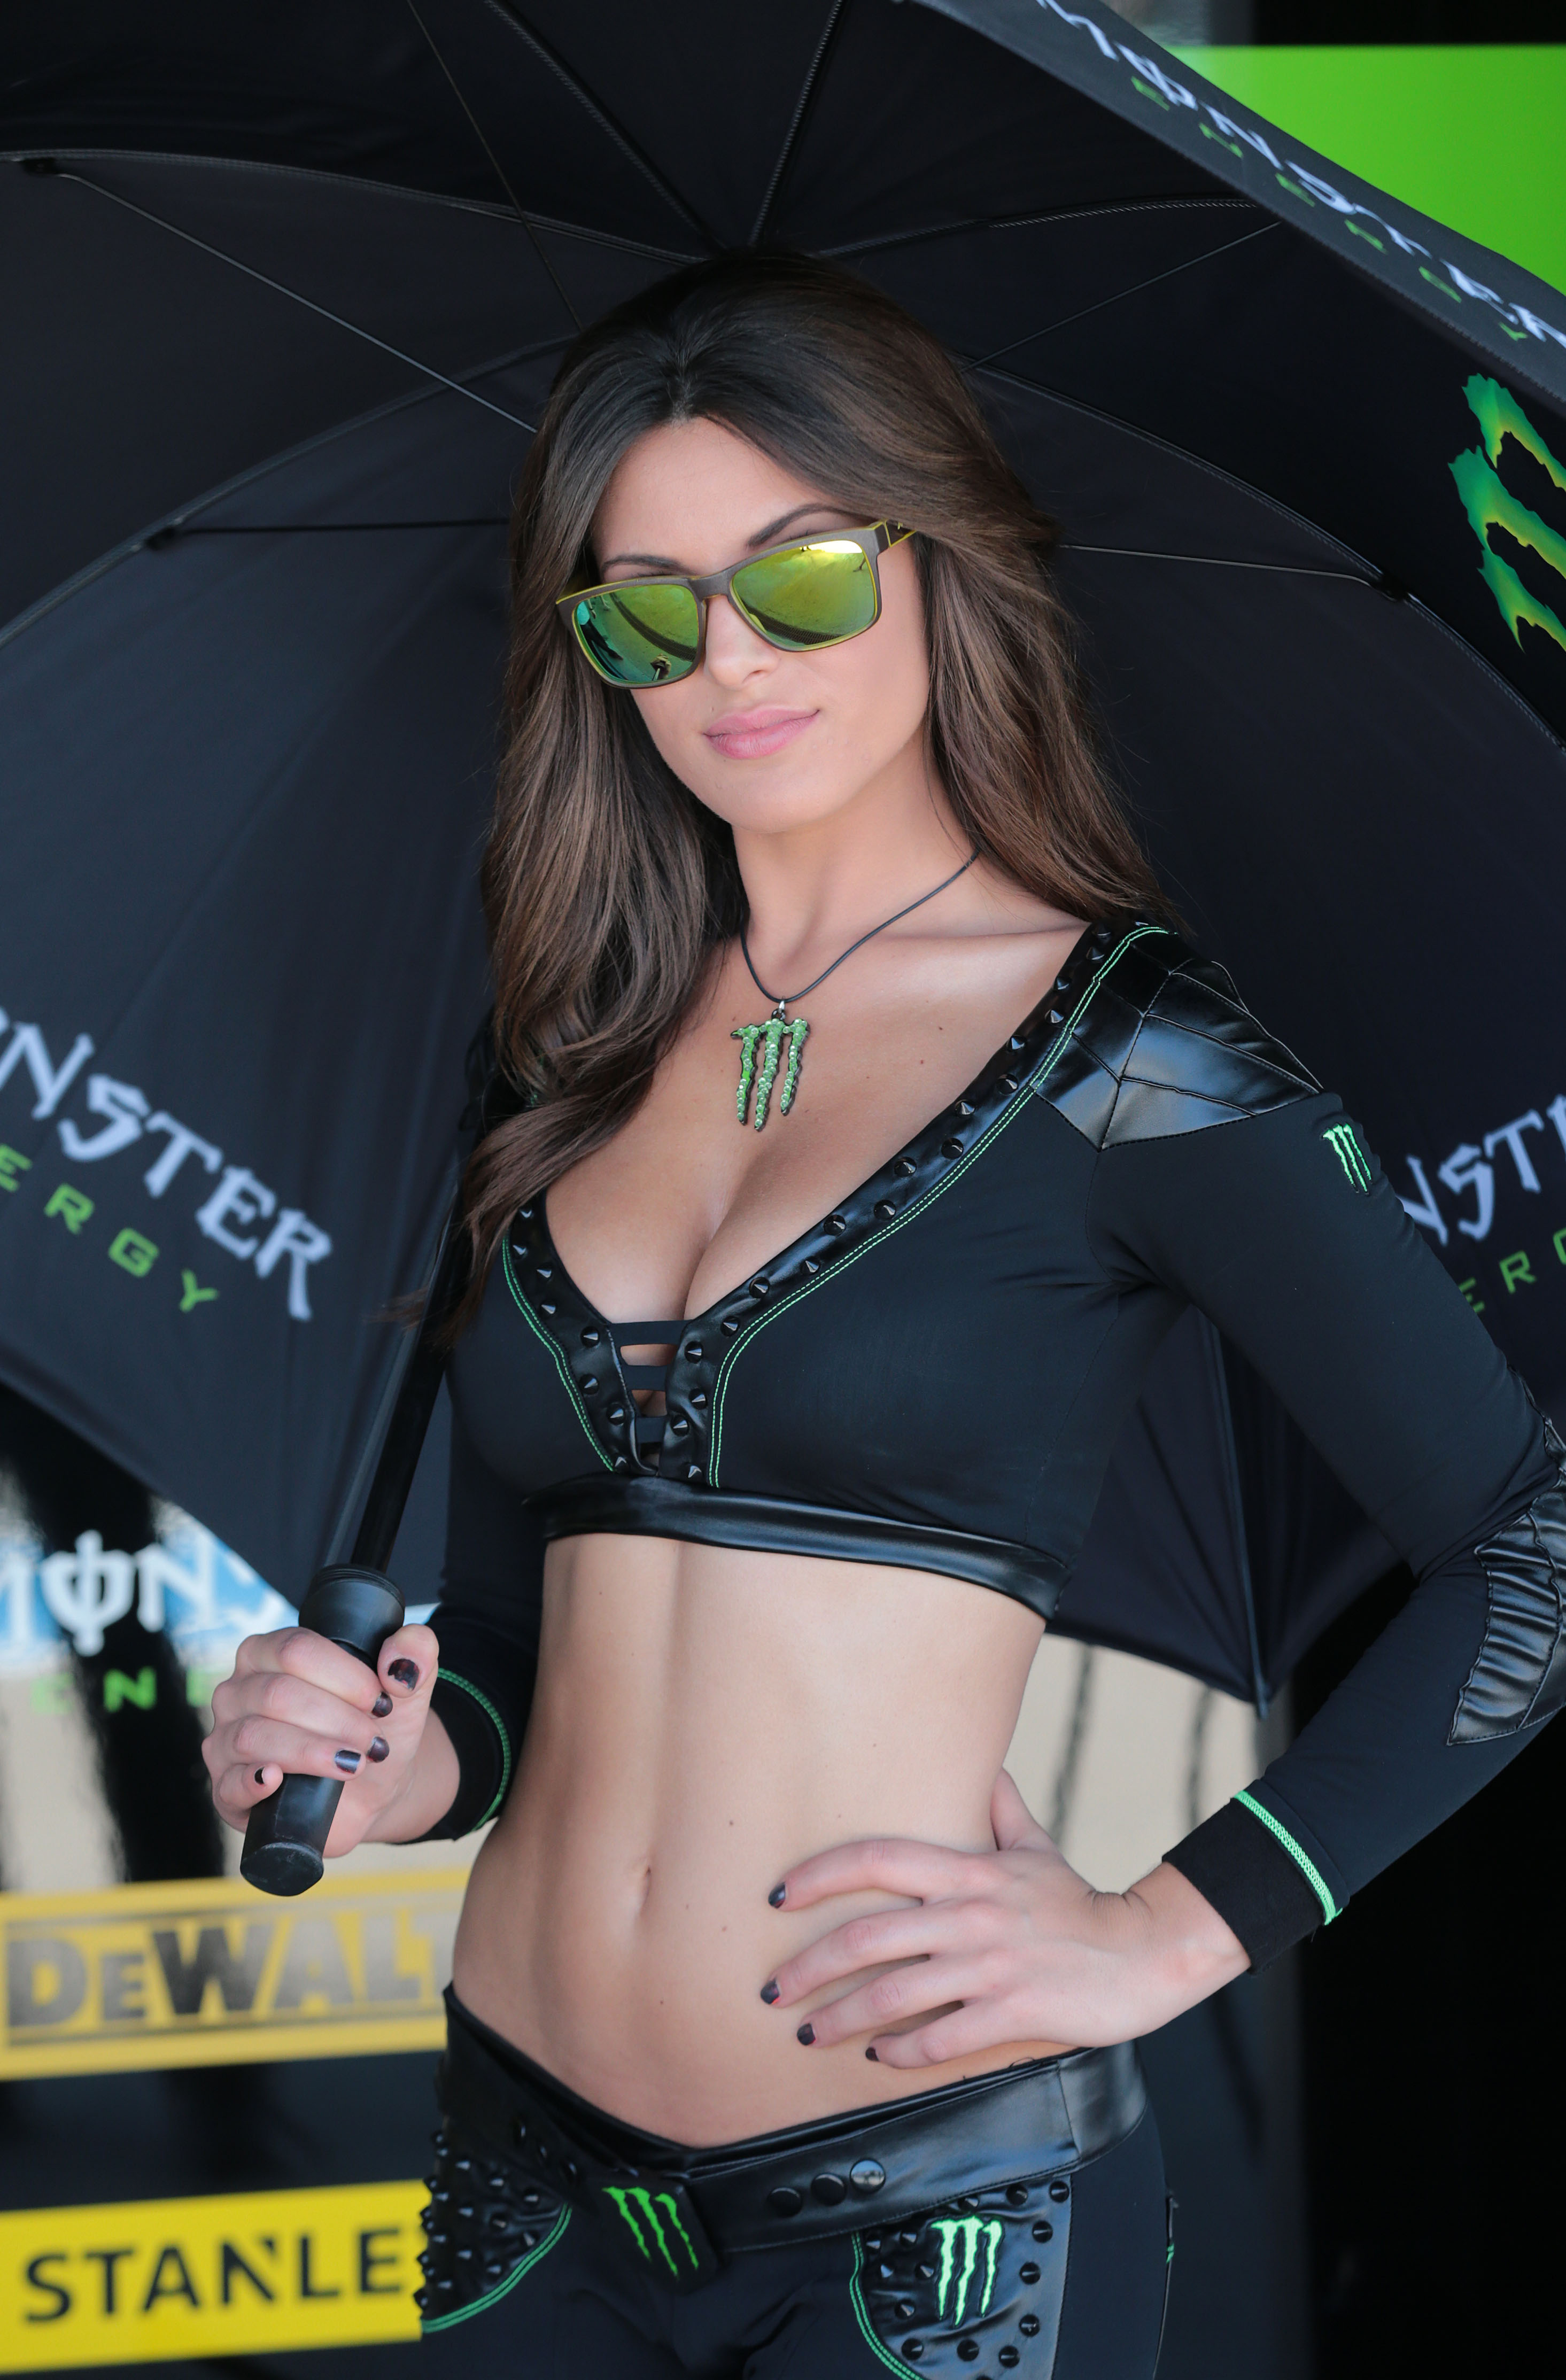 MotoGP Jerez paddock girls 2014 | Visordown